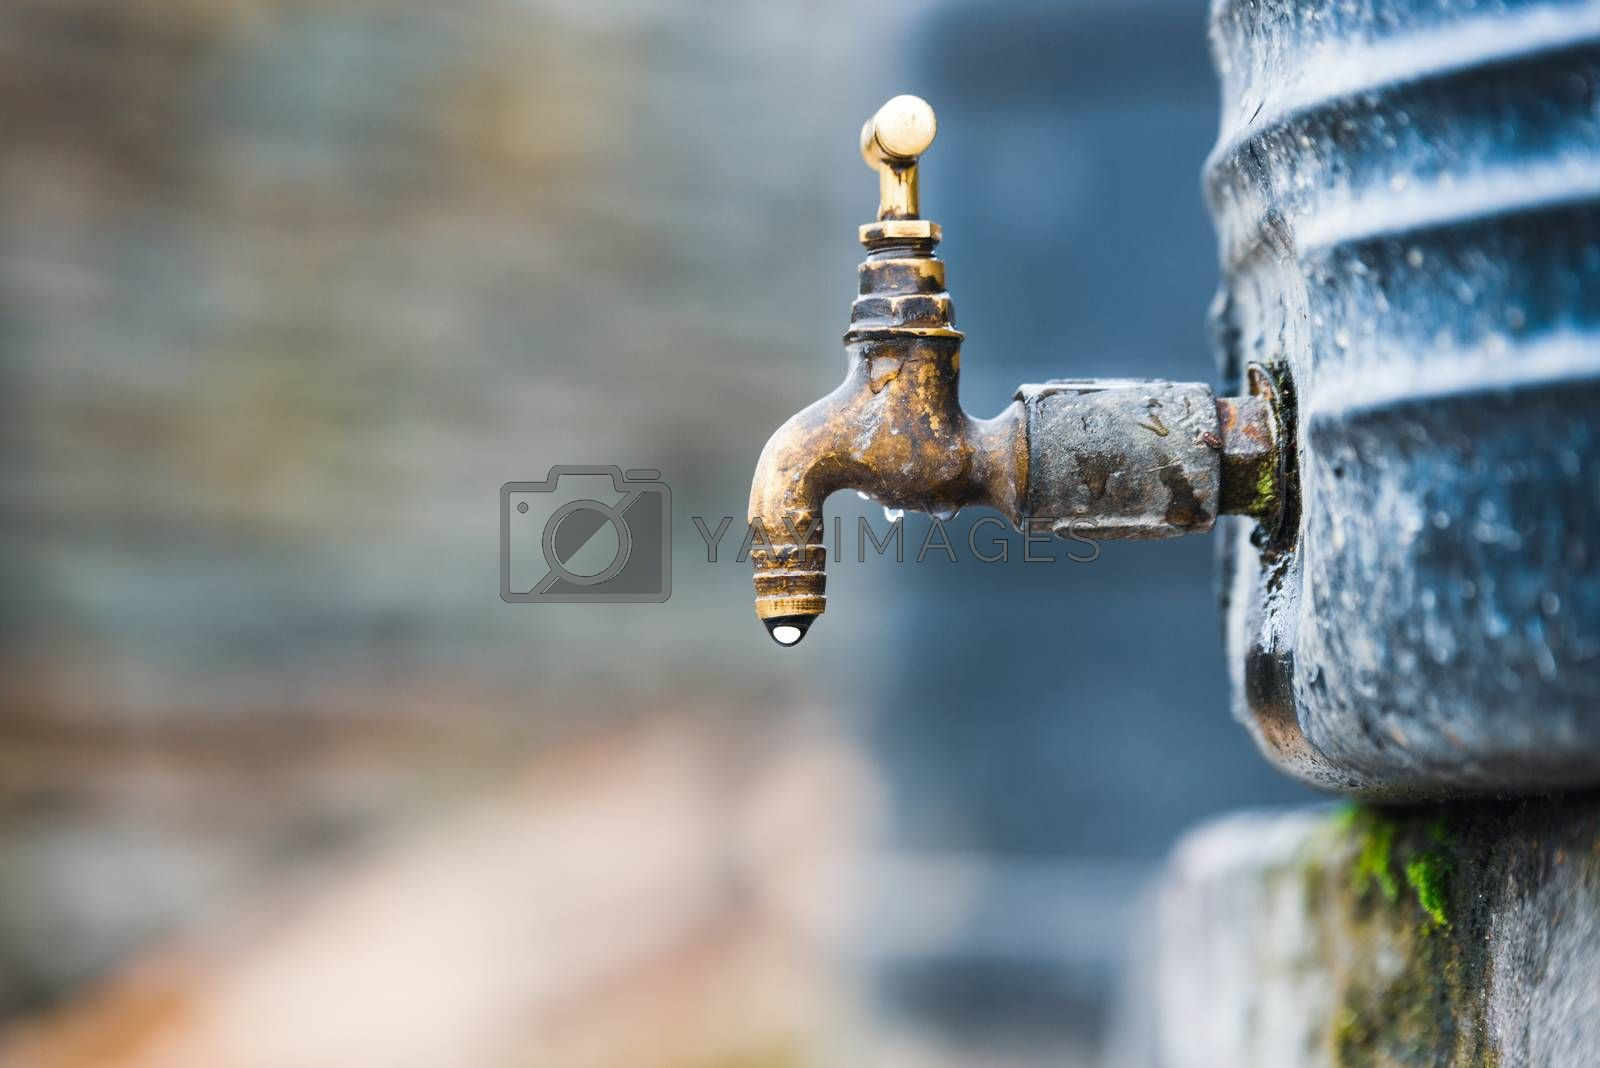 Dripping tap attached to a water tank